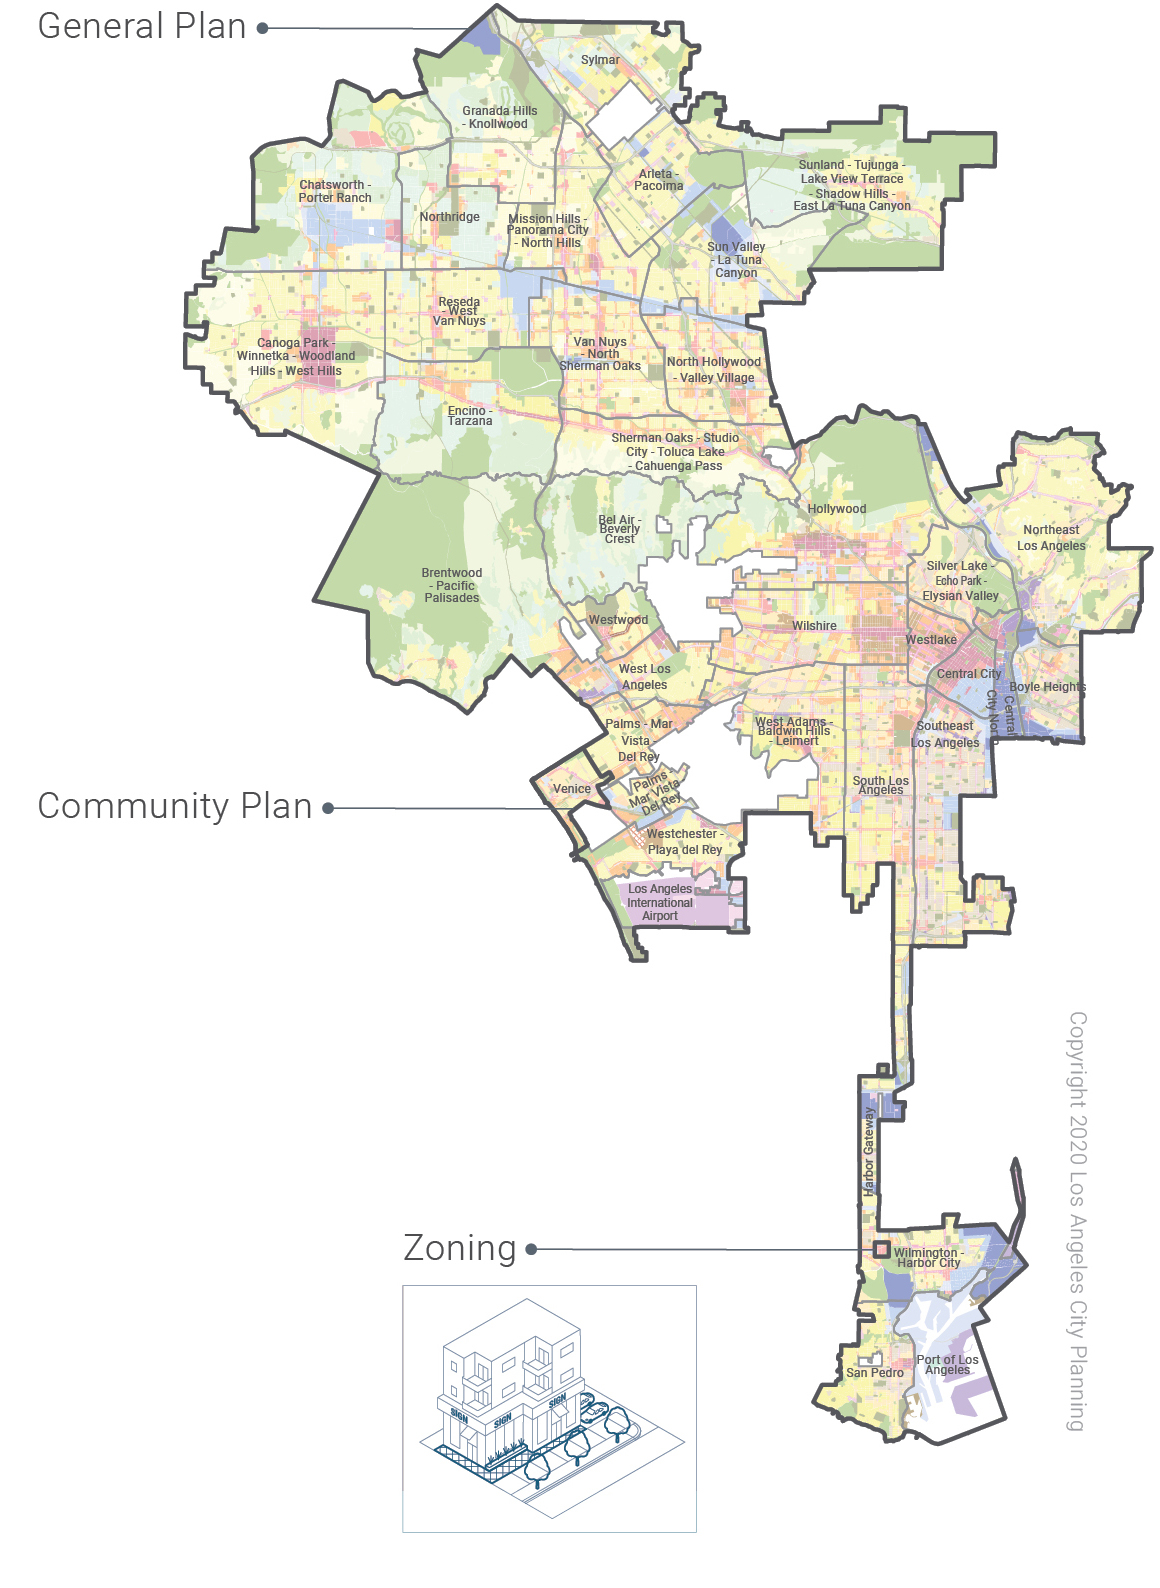 Image of Zones in Los Angeles